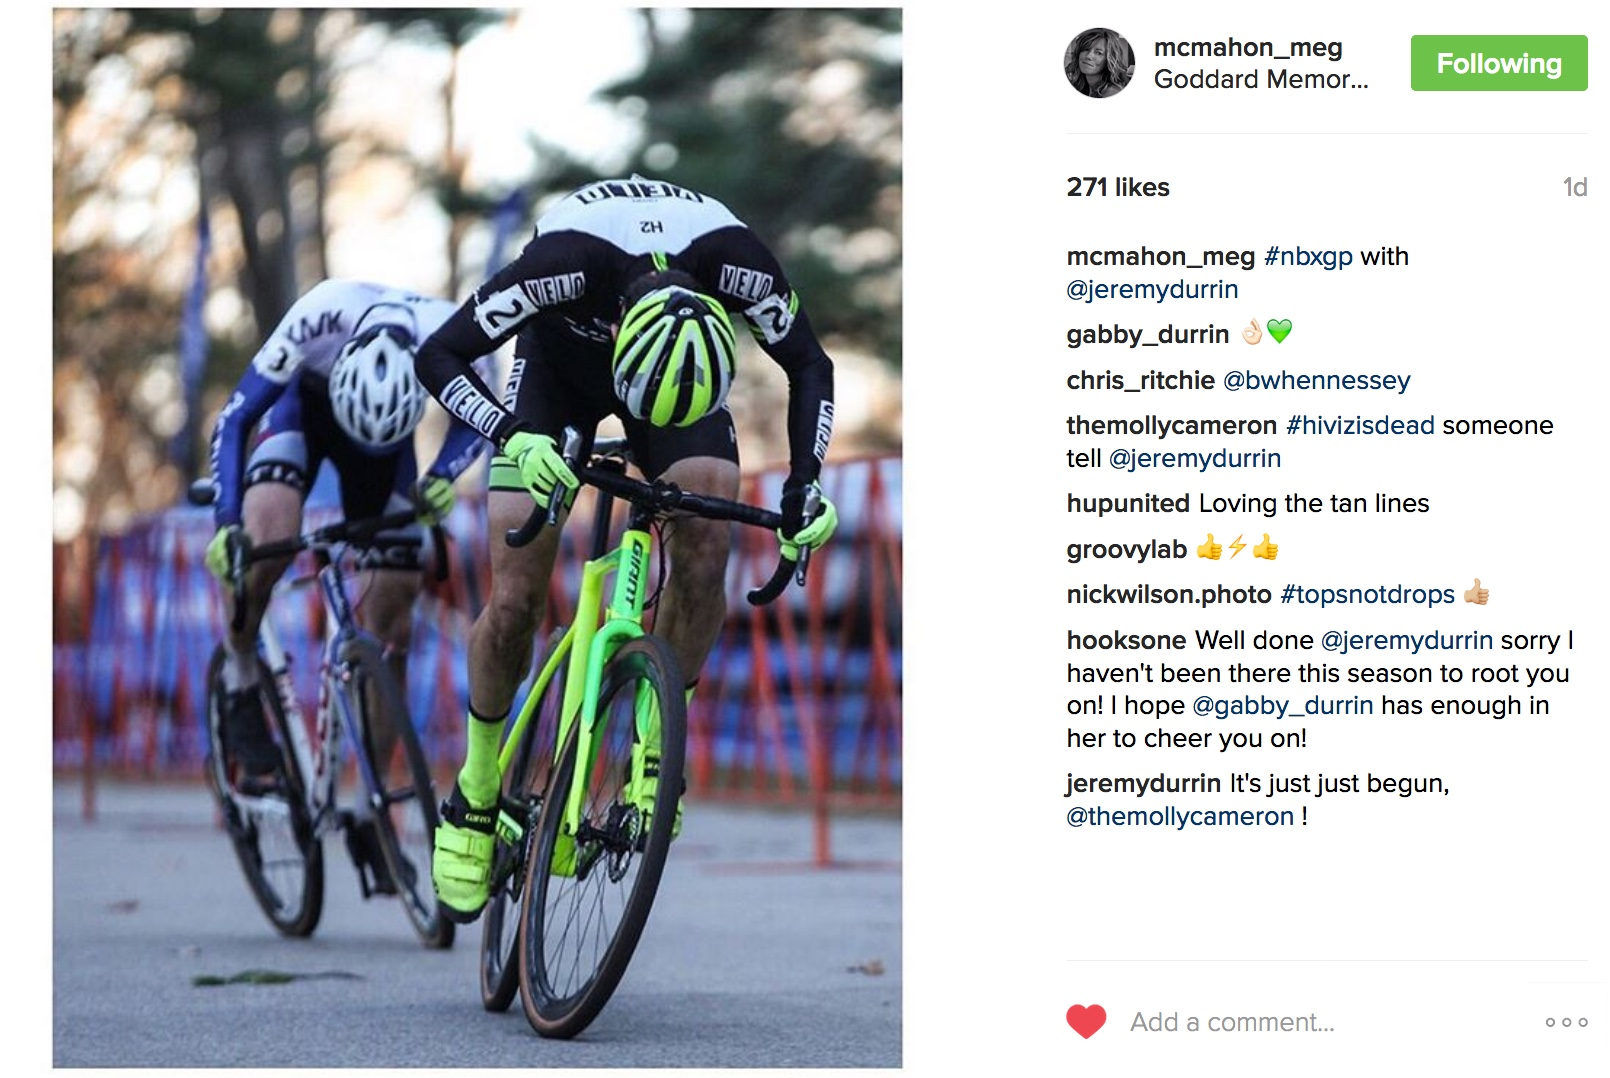 Talented cycling photographer Meg McMahon captured the finishing sprint between Jack Kisseberth and Jeremy Durrin on day one of the Gran Prix of Cyclocross.